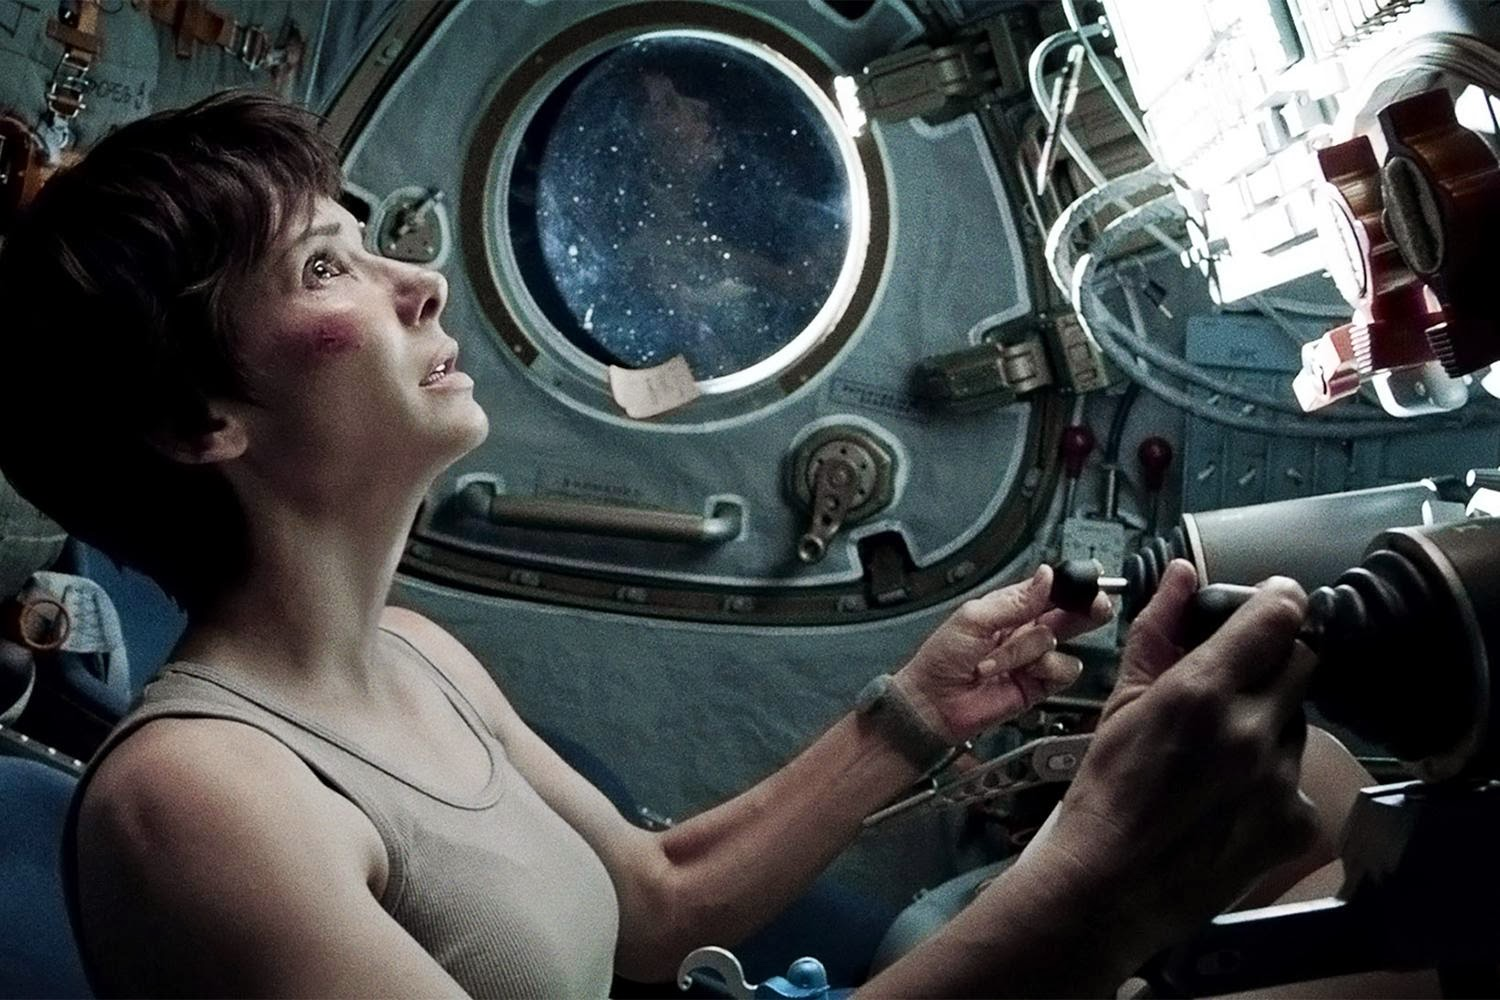 http://www.digitaltrends.com/wp-content/uploads/2013/10/gravity-movie-review-sandra-bullock-shiop.jpg